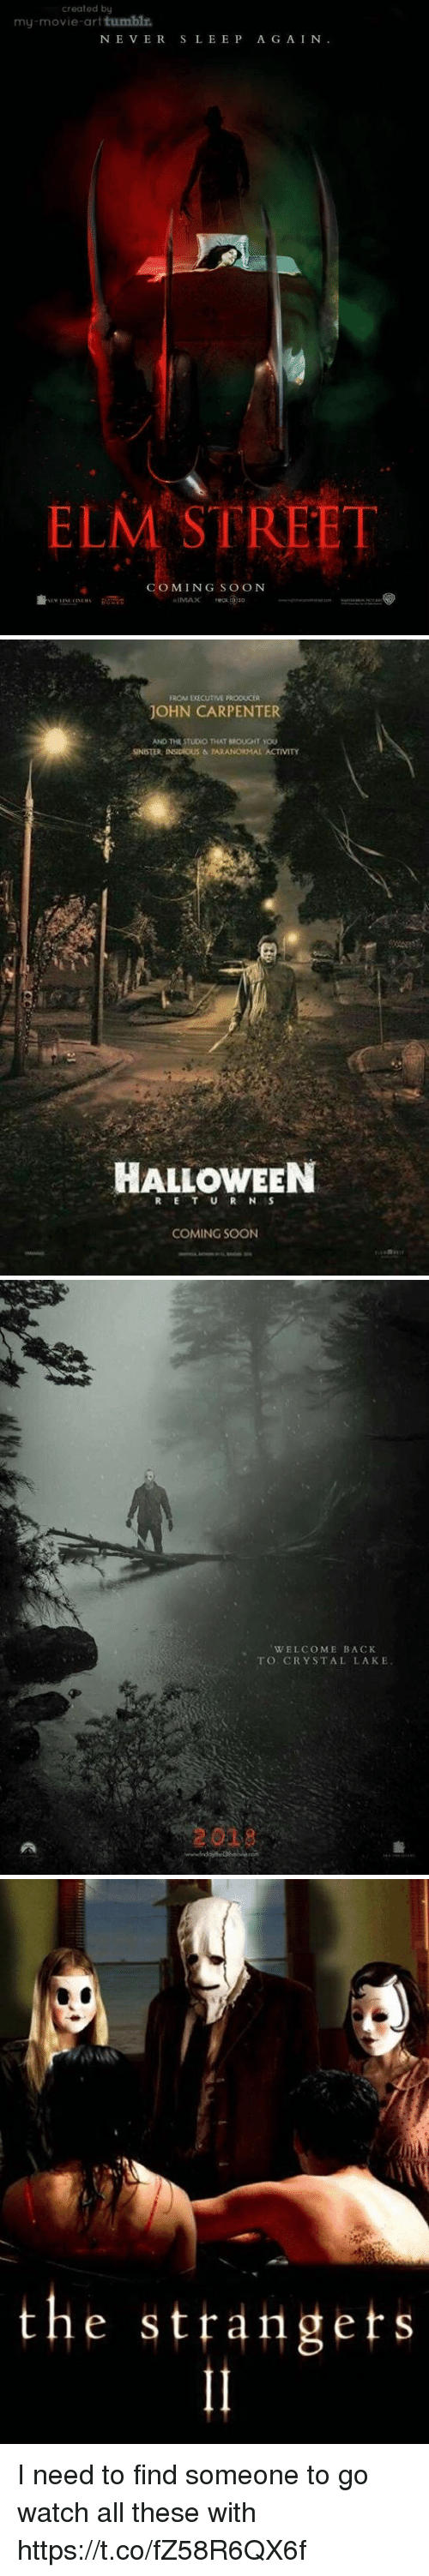 Sinister: created by  my-movie-art tumblr  NE VERSLEEP A G AIN.  ELM STREET  COMING SO oN   ROM EXECUTIVE PRODUCER  JOHN CARPENTER  AND THE STUDIO THAT BROUGHT YOU  SINISTER INSIDIOUS & TARANORMAL ACTIVITY  HALLOWEEN  COMING SOON   WELCOME BACK  TO CRYSTAL LAKE  2029   the strangets  1 I need to find someone to go watch all these with https://t.co/fZ58R6QX6f